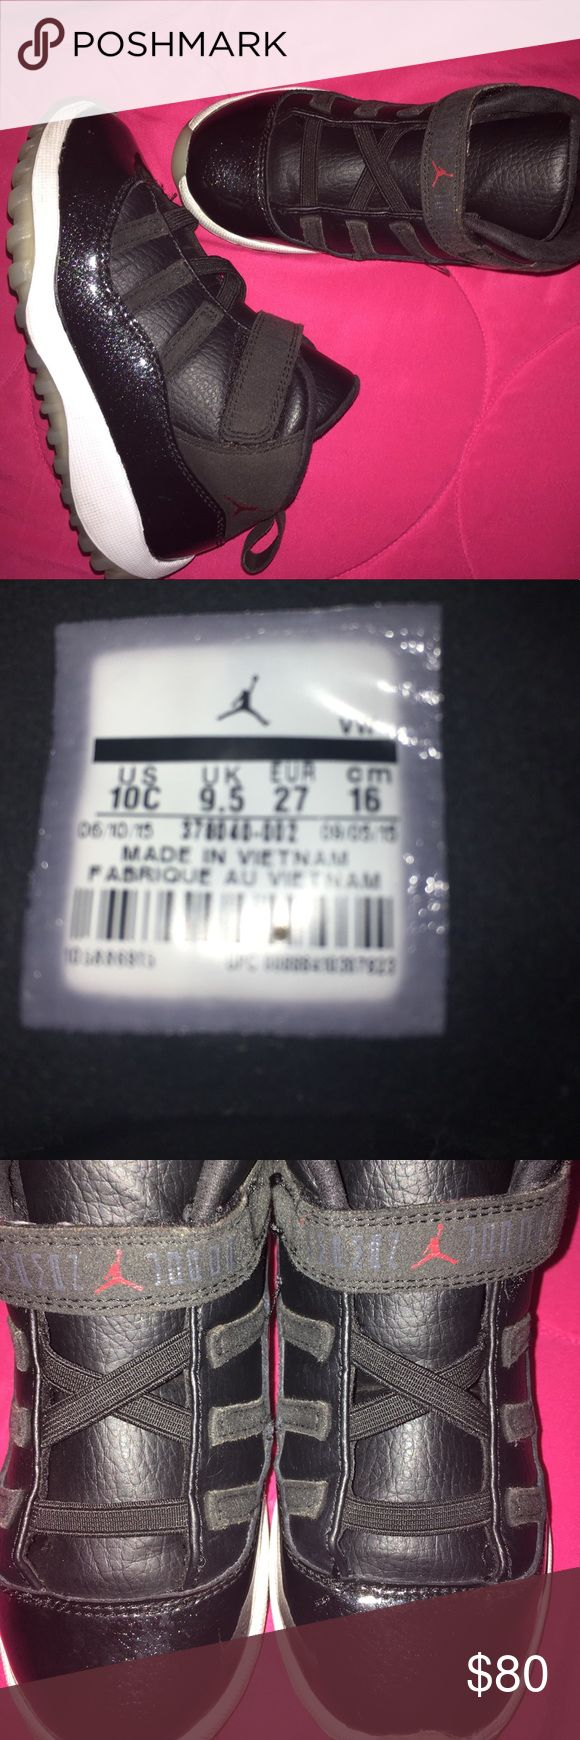 Kids Jordan shoes Kids Jordan shoes size 10c Jordan Shoes Sneakers